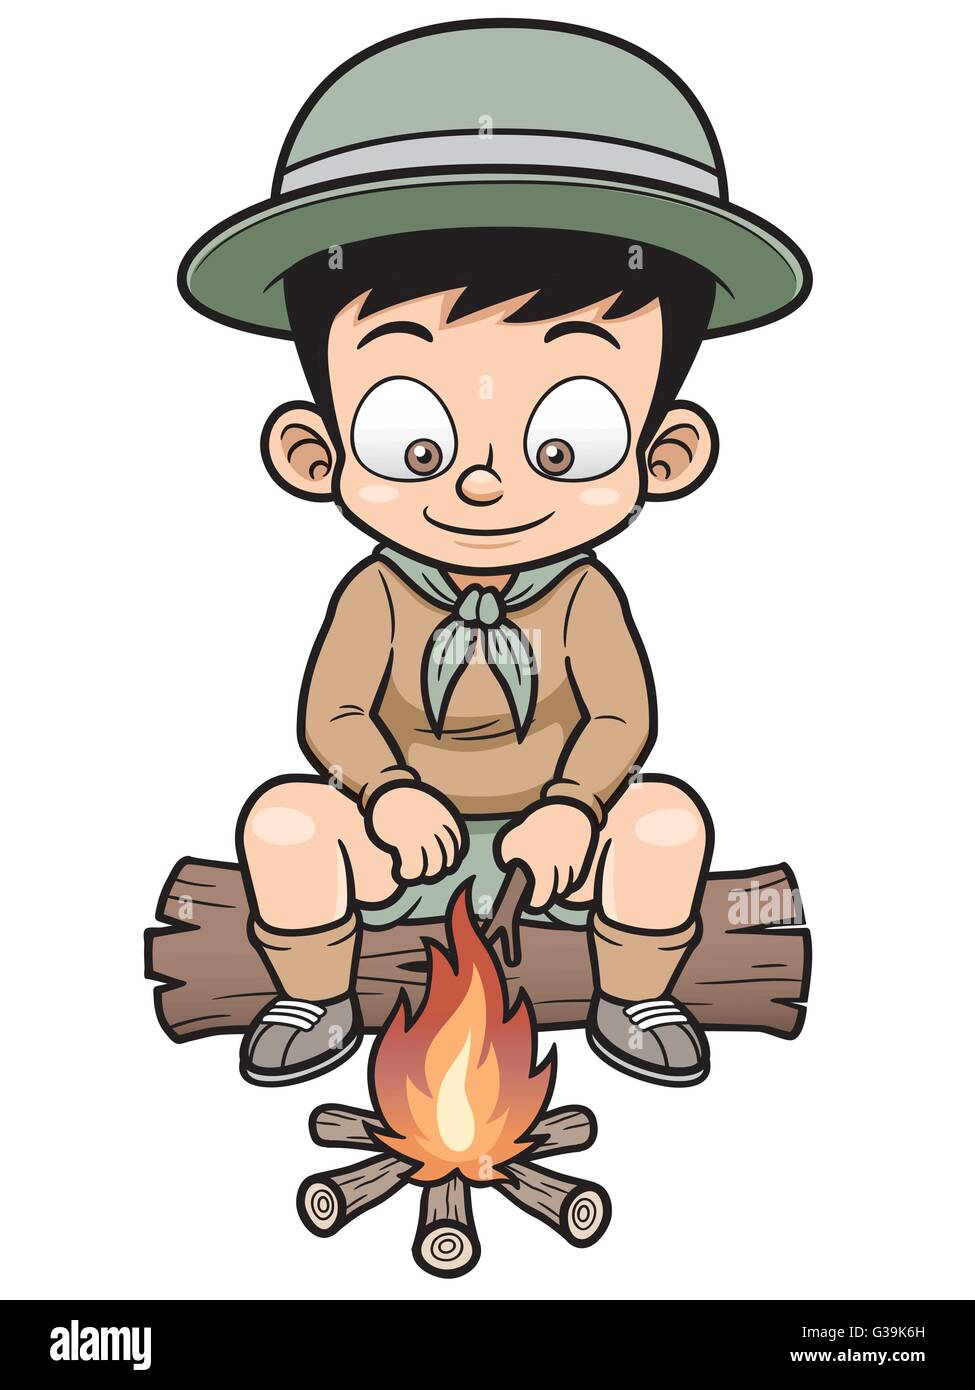 Vector illustration of Boy Camping Cartoon - Stock Vector